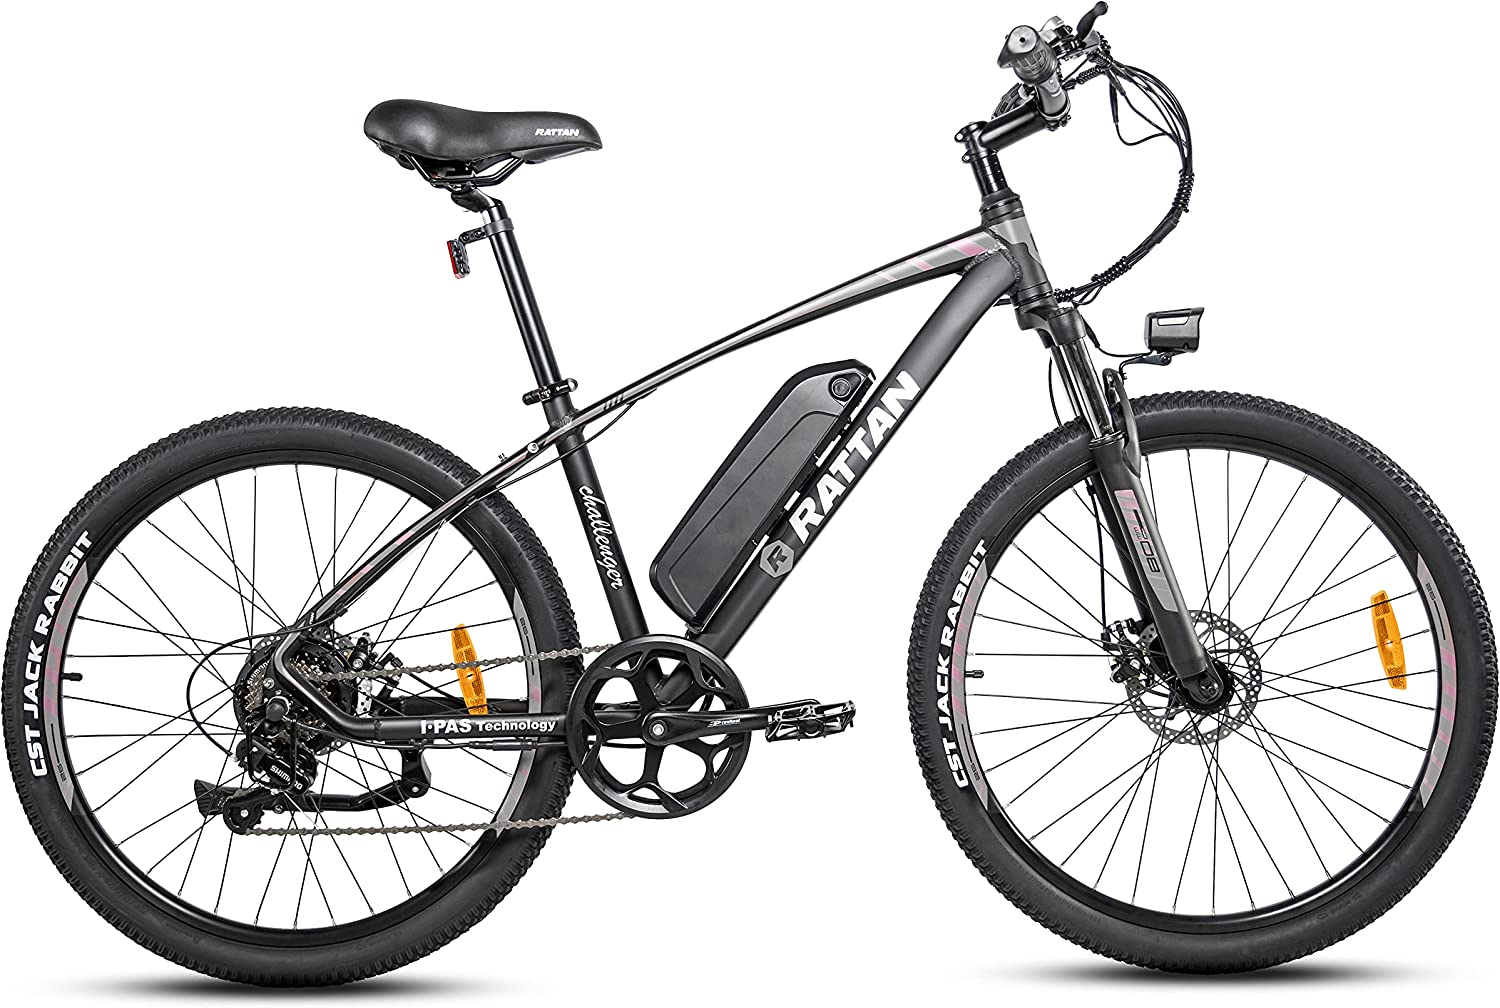 Rattan Electric Mountain Ebikes Fresno Mall 48V Max 55% OFF Bike Adult 350W for